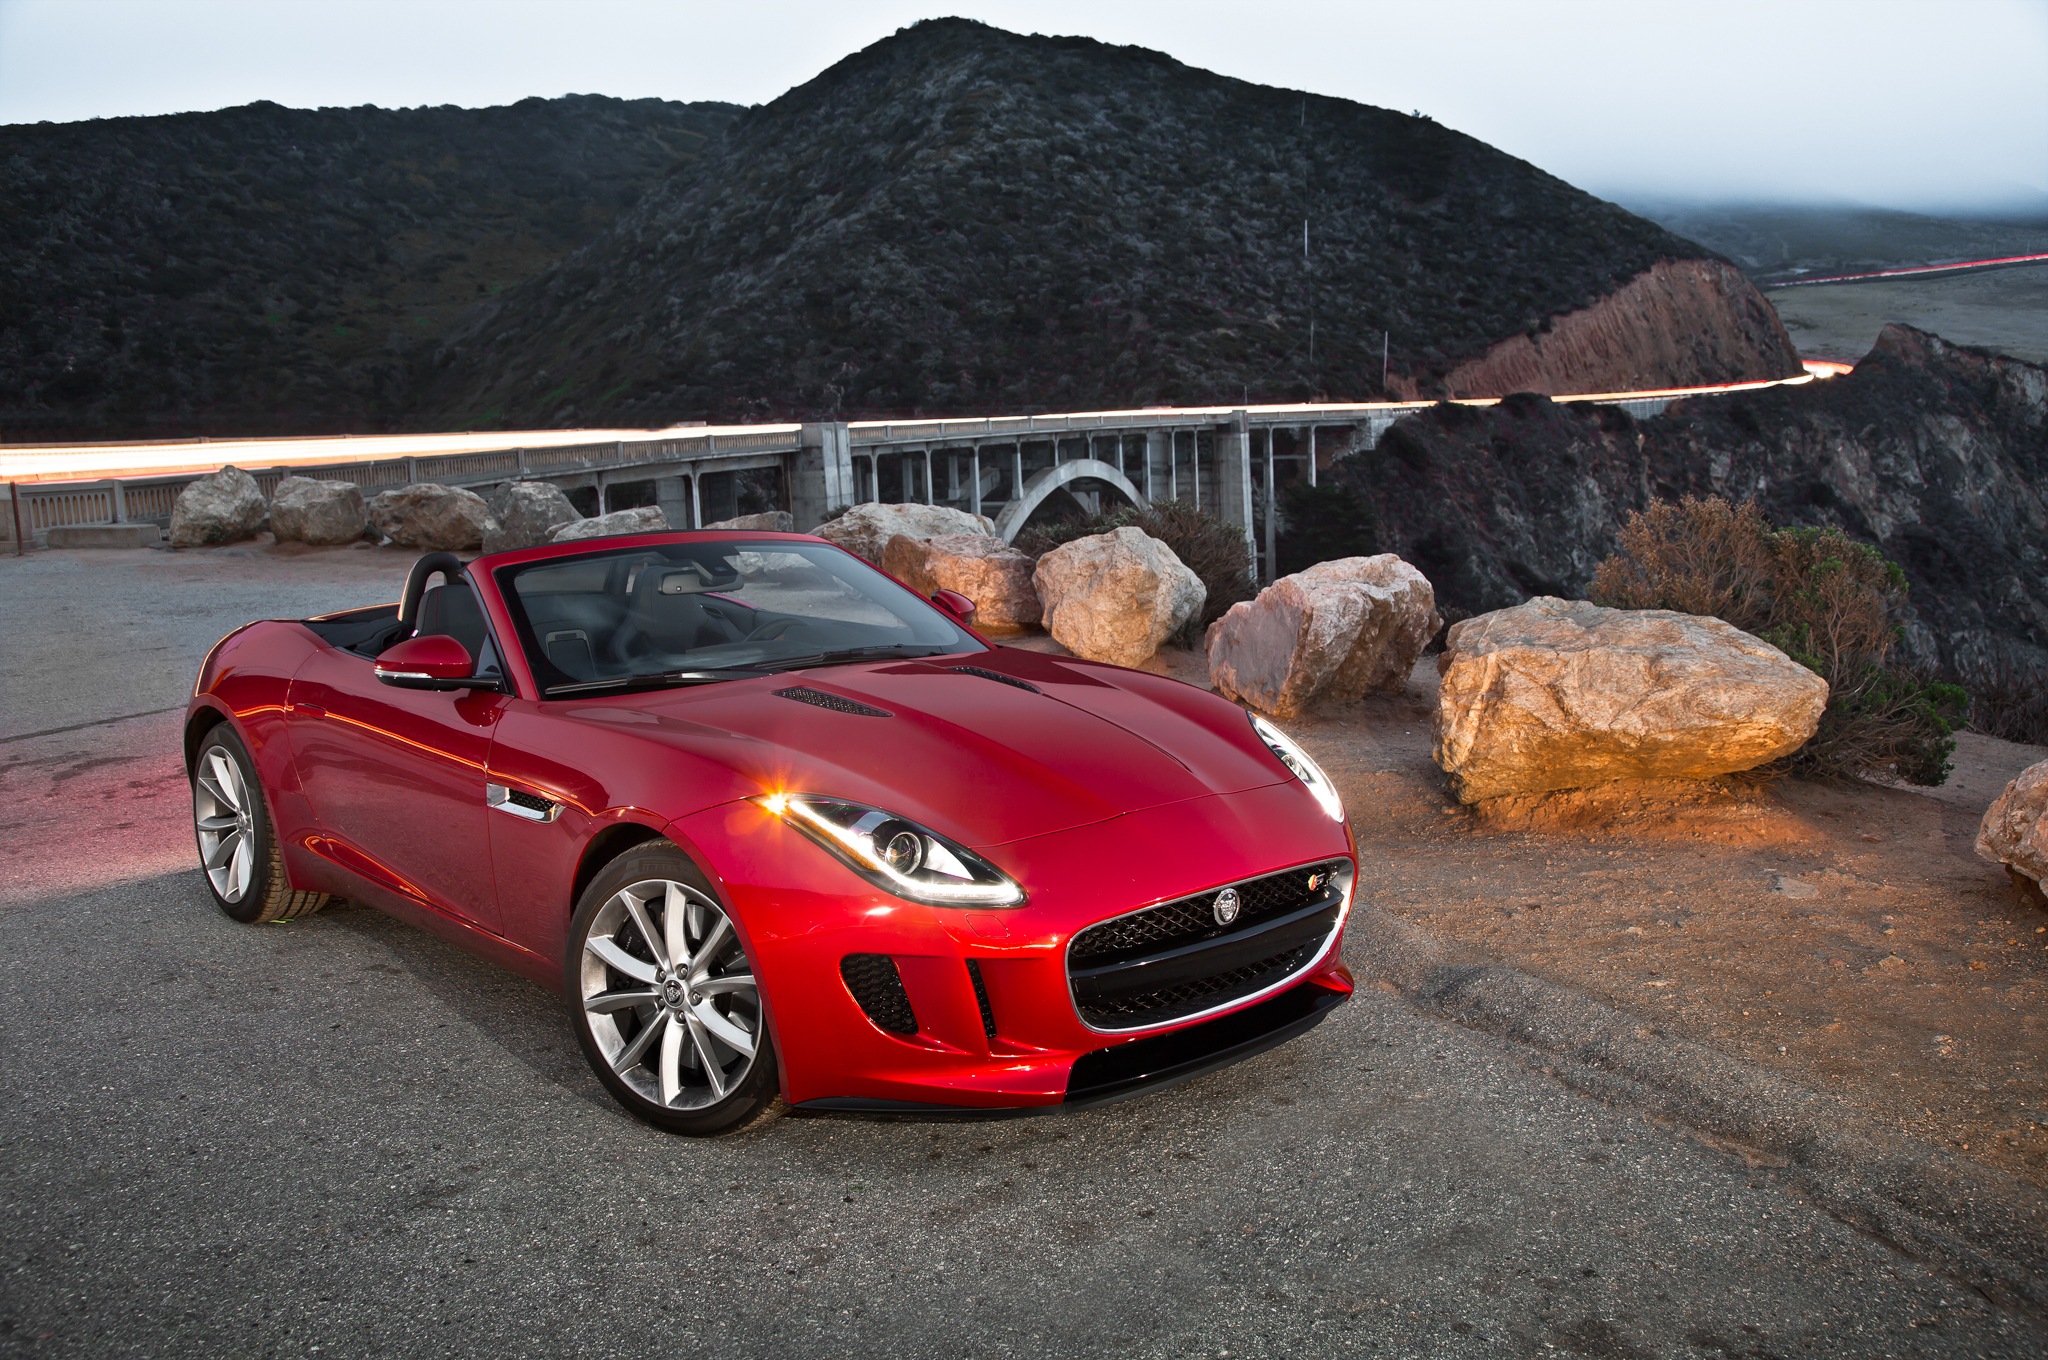 2014 Jaguar F-Type S V-6 Roadster Long-Term Arrival